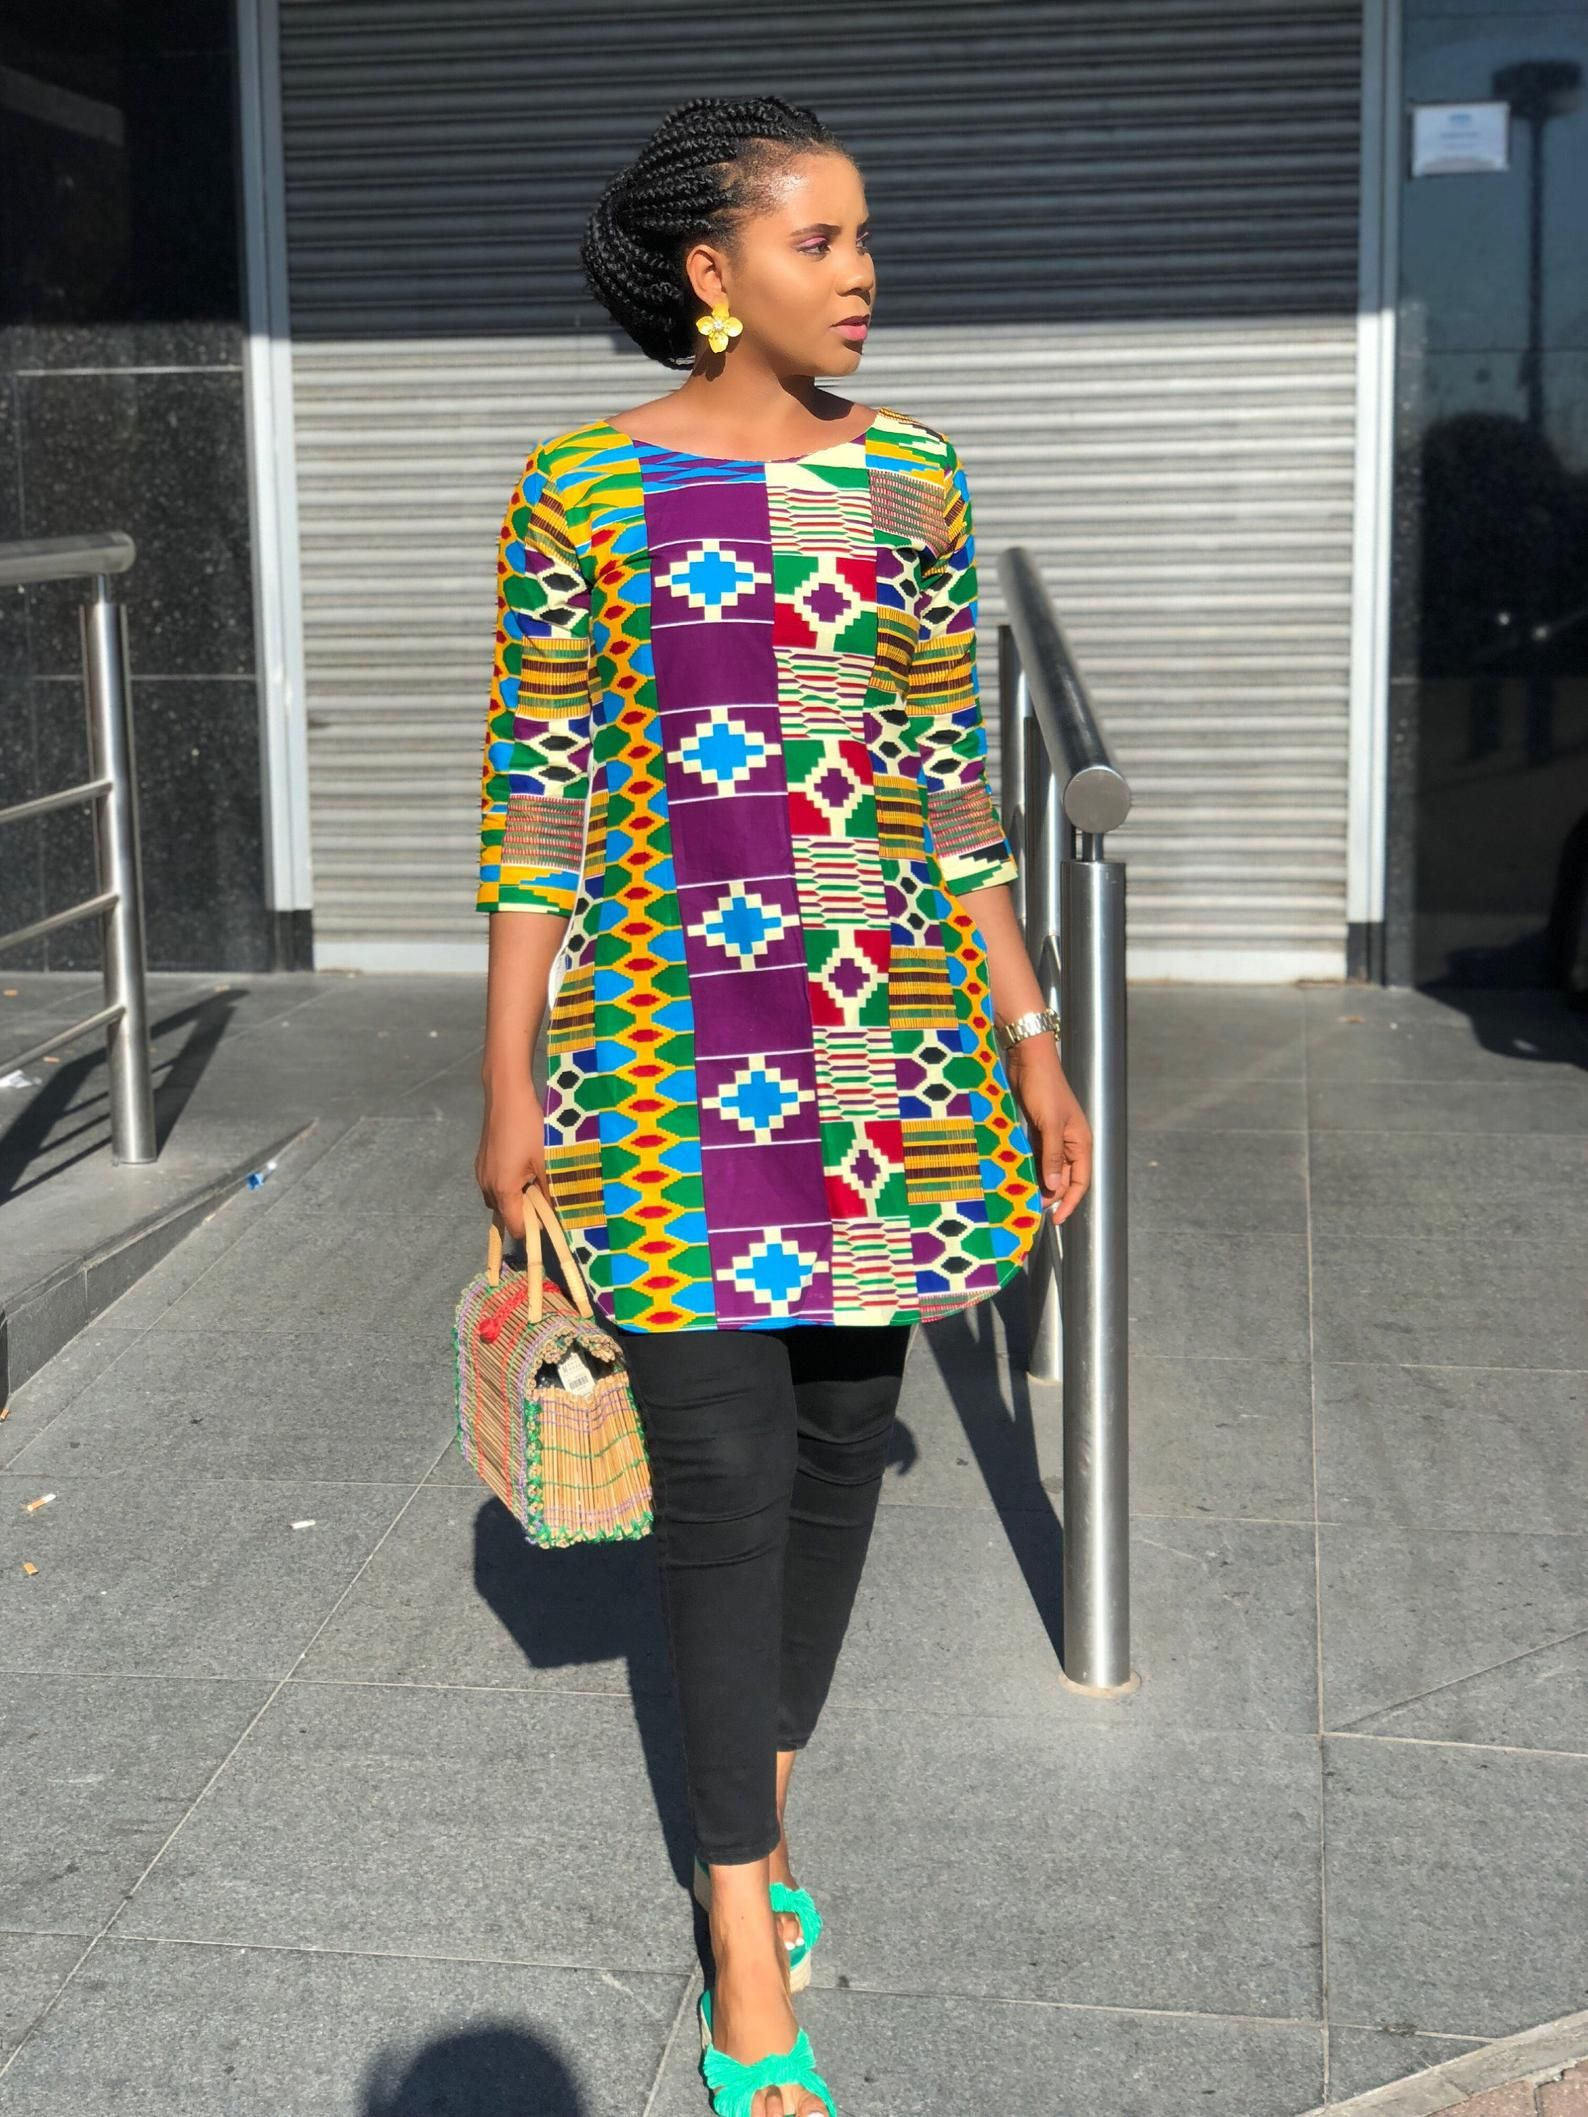 Rosemary African Print Ankara and crepe 2 way top/ tunic